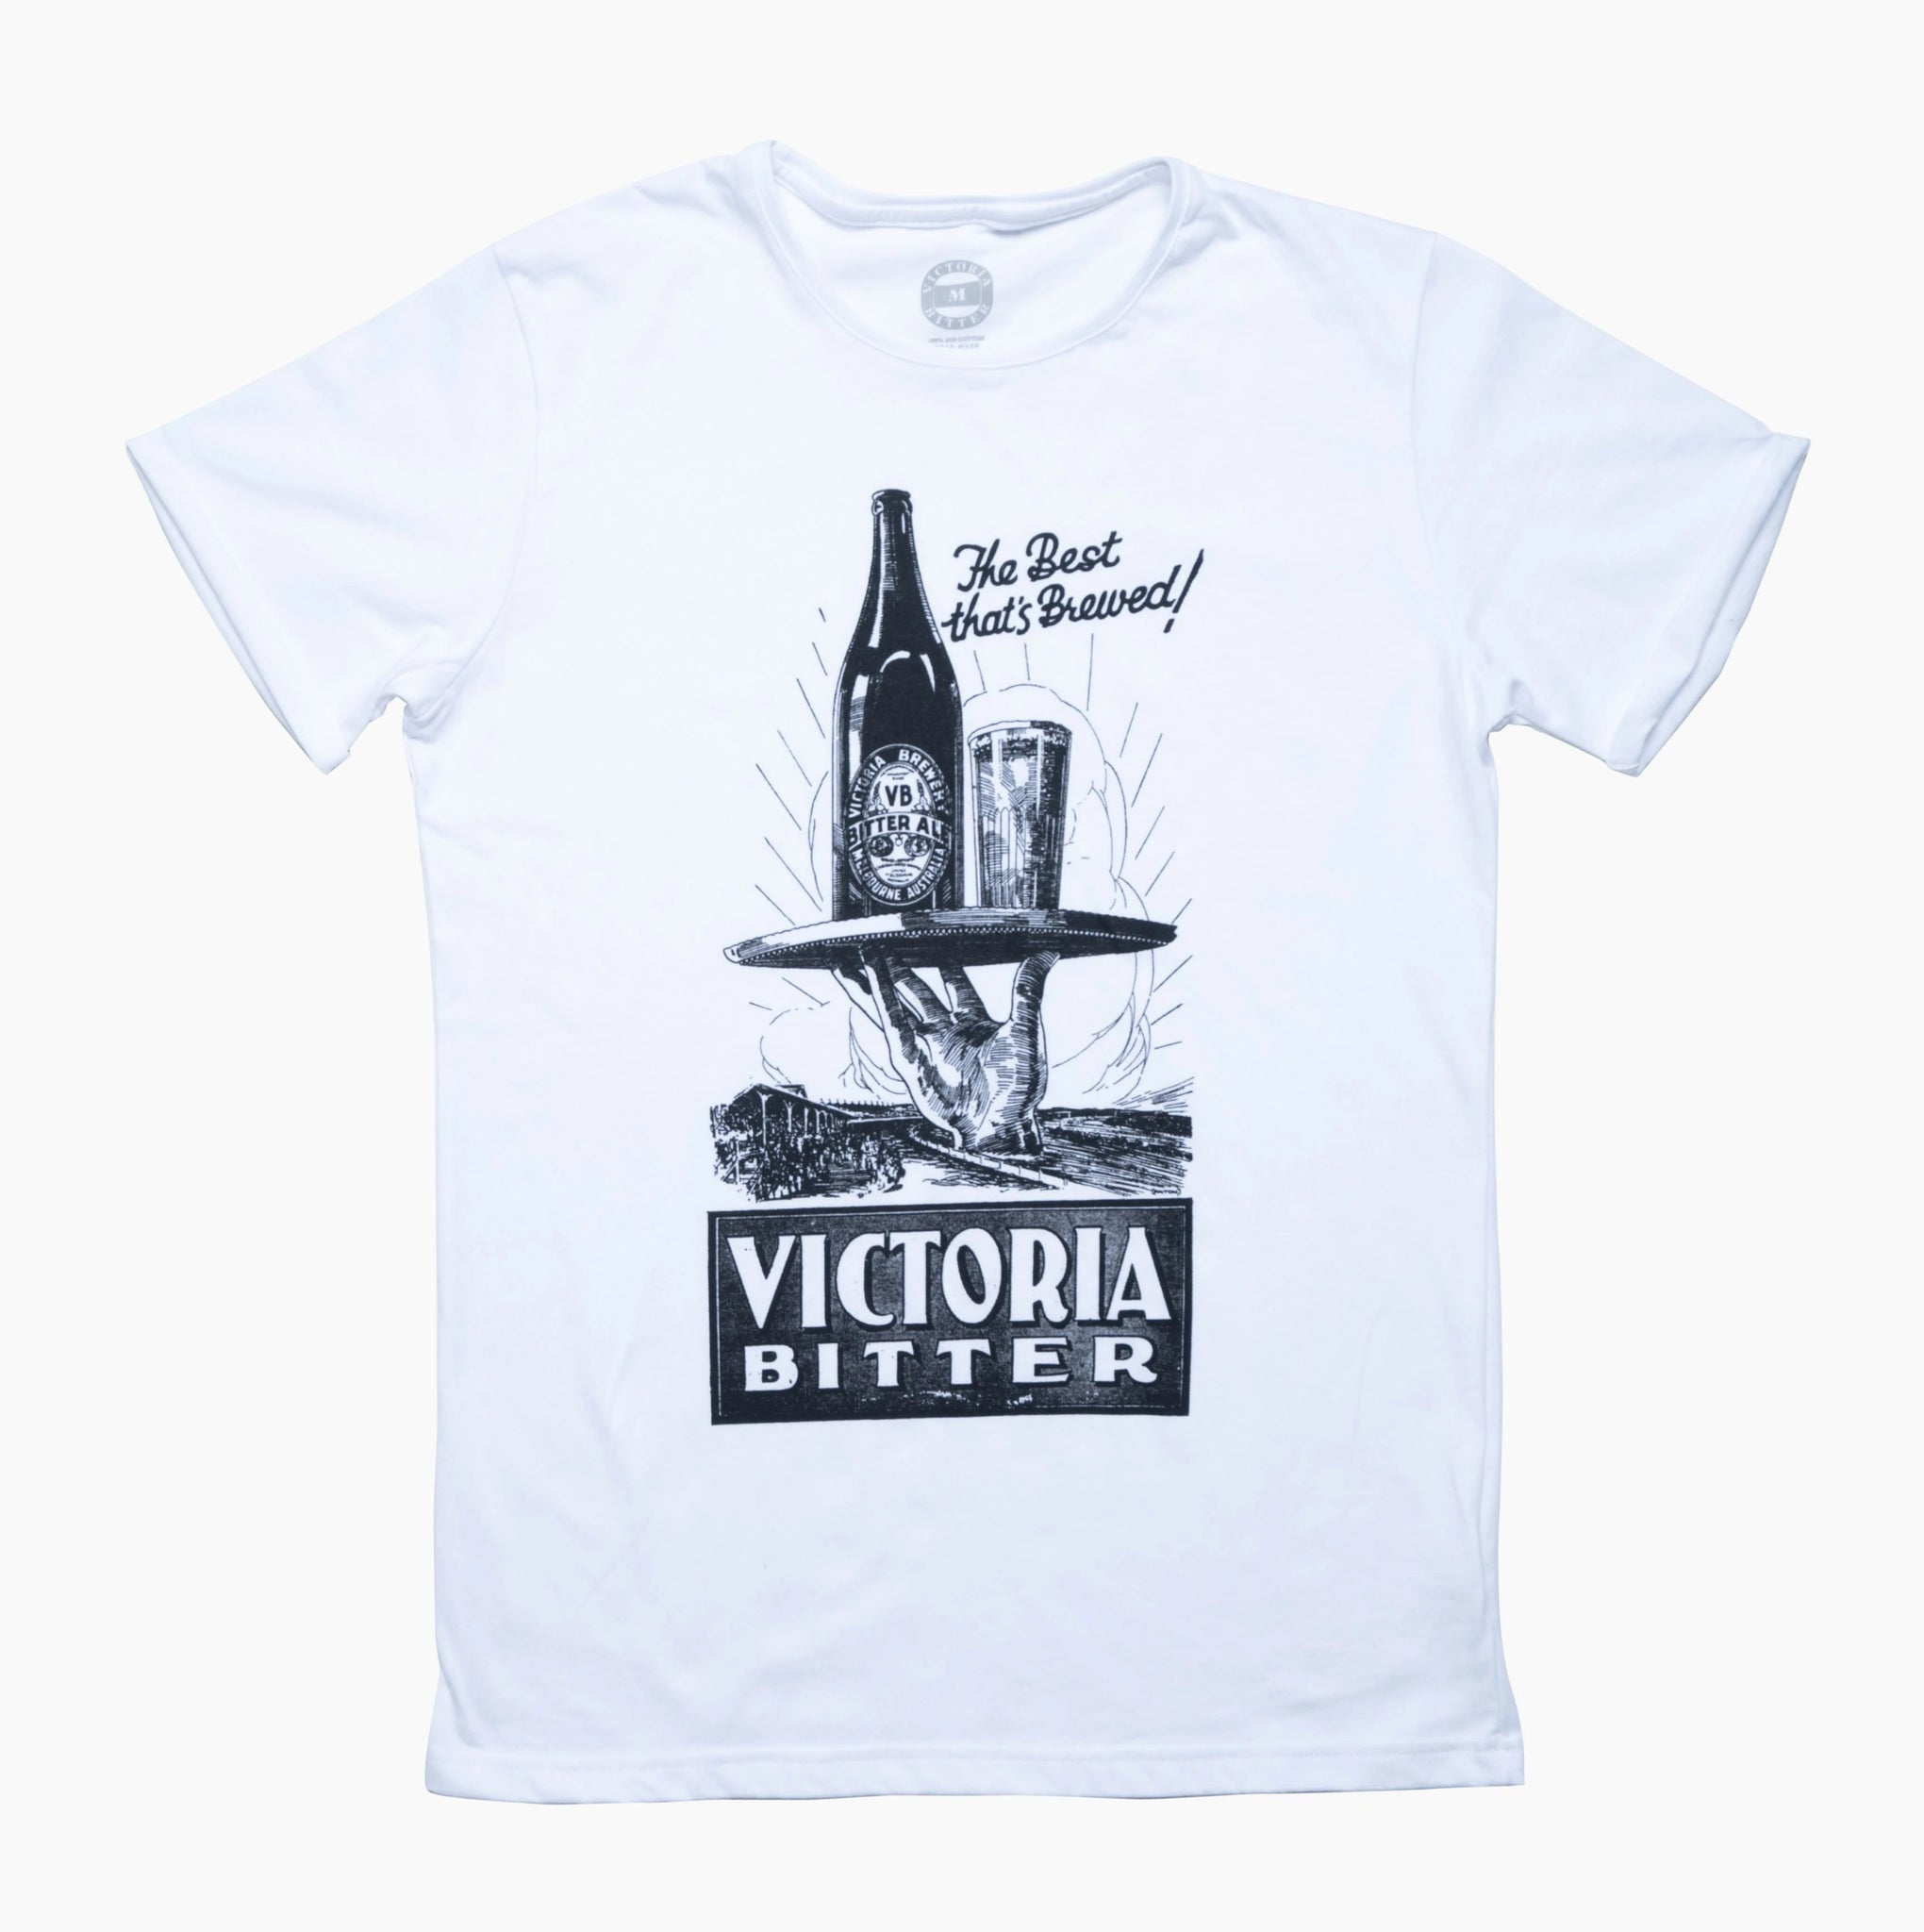 Best That's Brewed Tee White